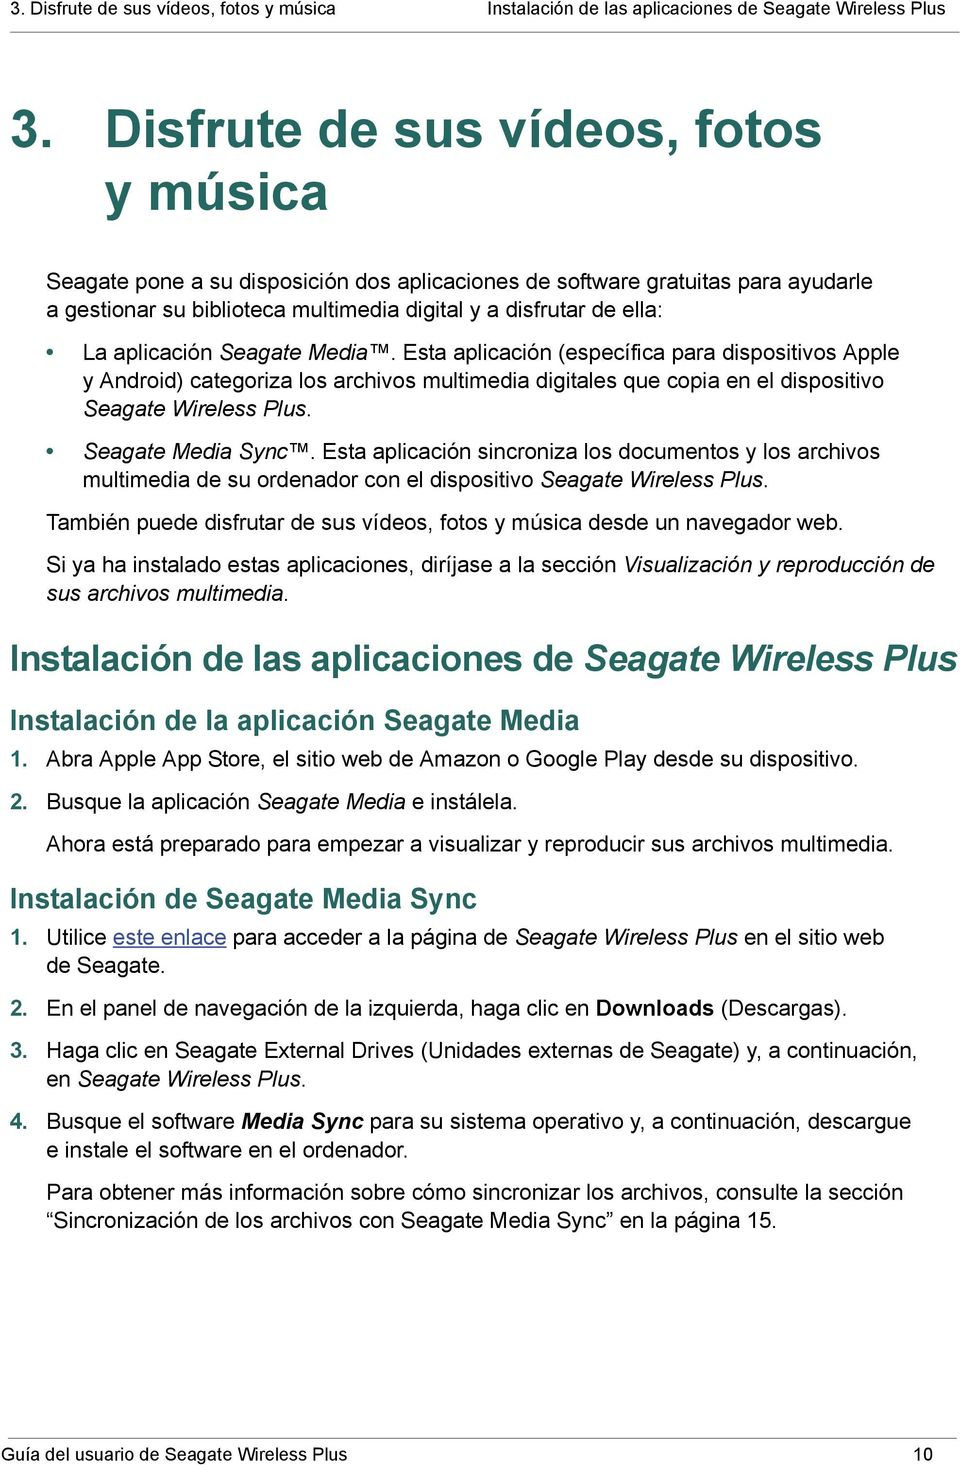 aplicación Seagate Media. Esta aplicación (específica para dispositivos Apple y Android) categoriza los archivos multimedia digitales que copia en el dispositivo Seagate Wireless Plus.